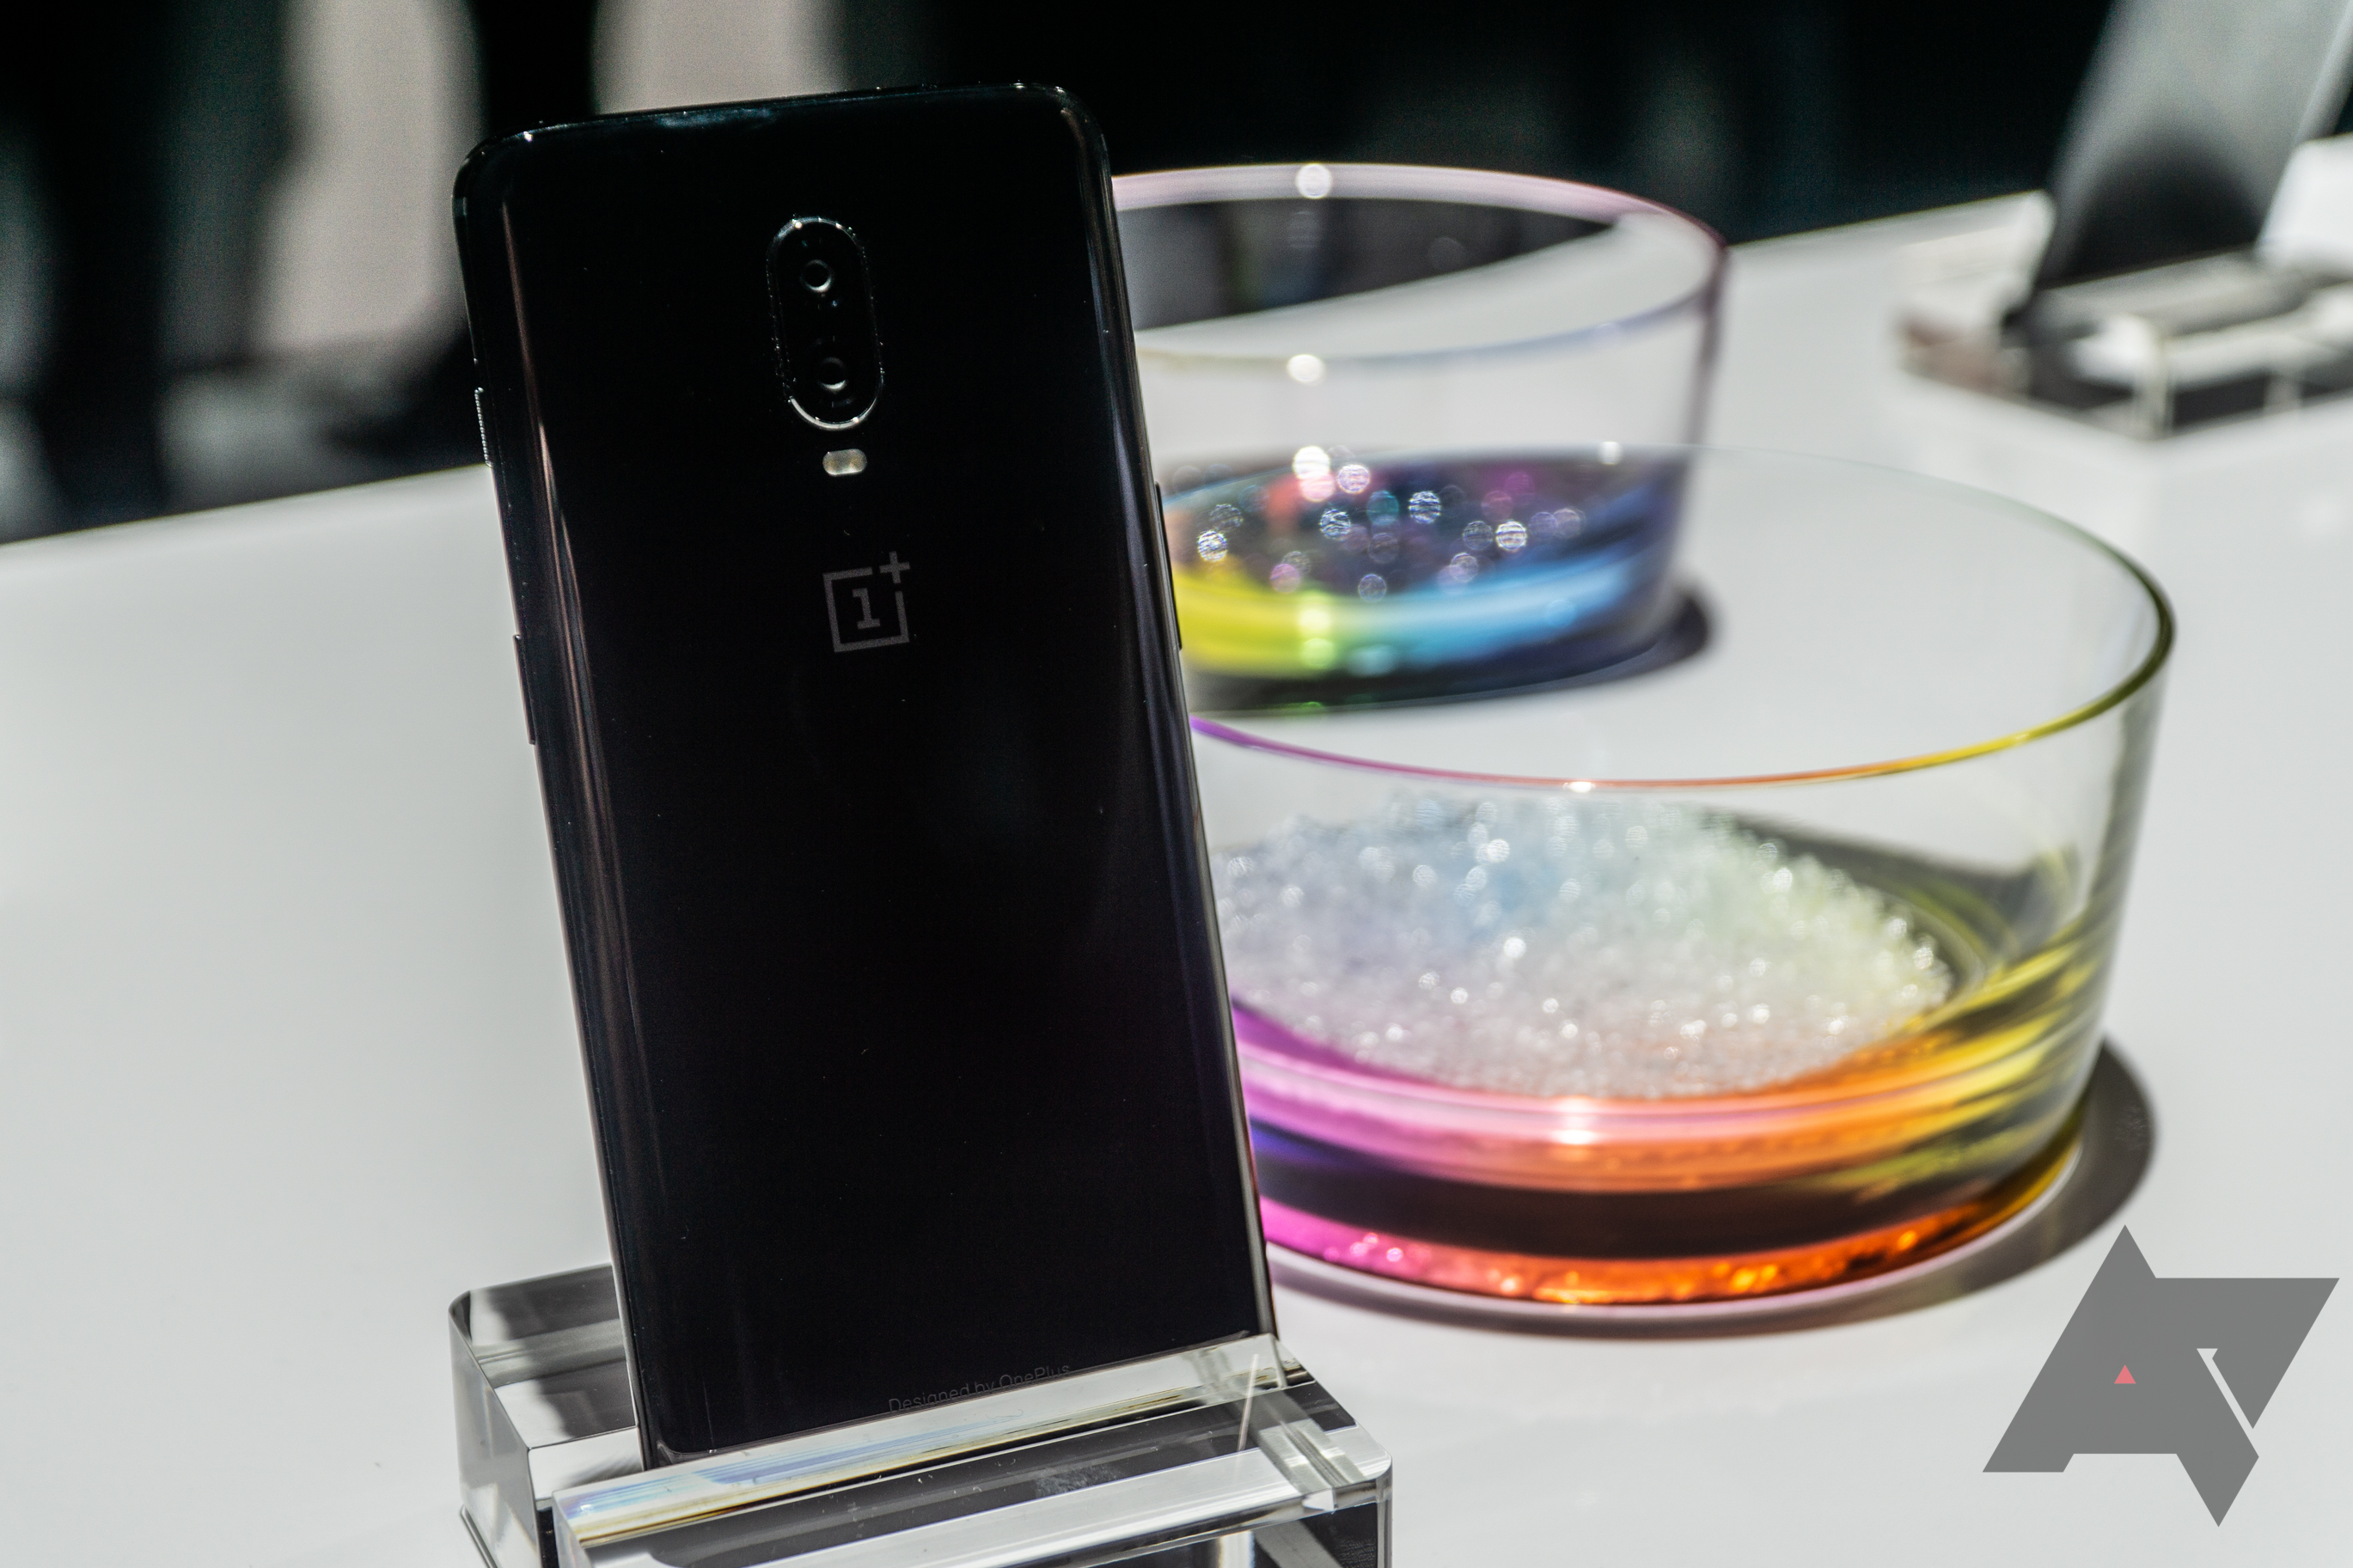 OnePlus team including Carl Pei hosts 6T AMA - here are the